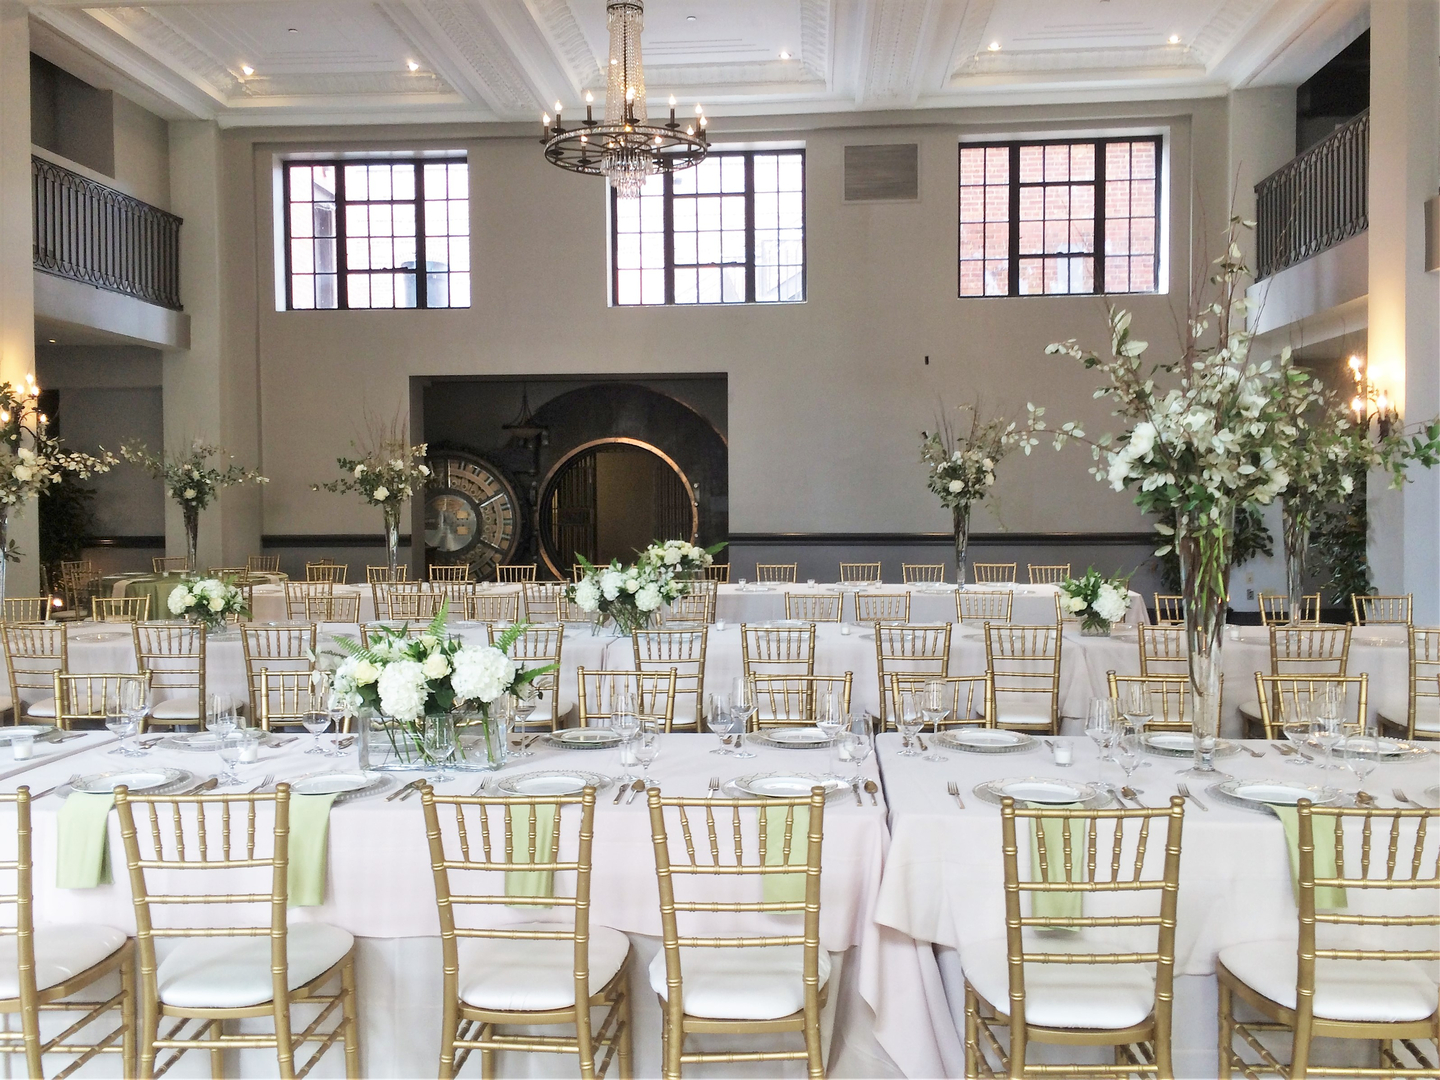 Wedding reception meetings nita patel columbia sc a historic event venue in the heart of downtown columbia junglespirit Choice Image